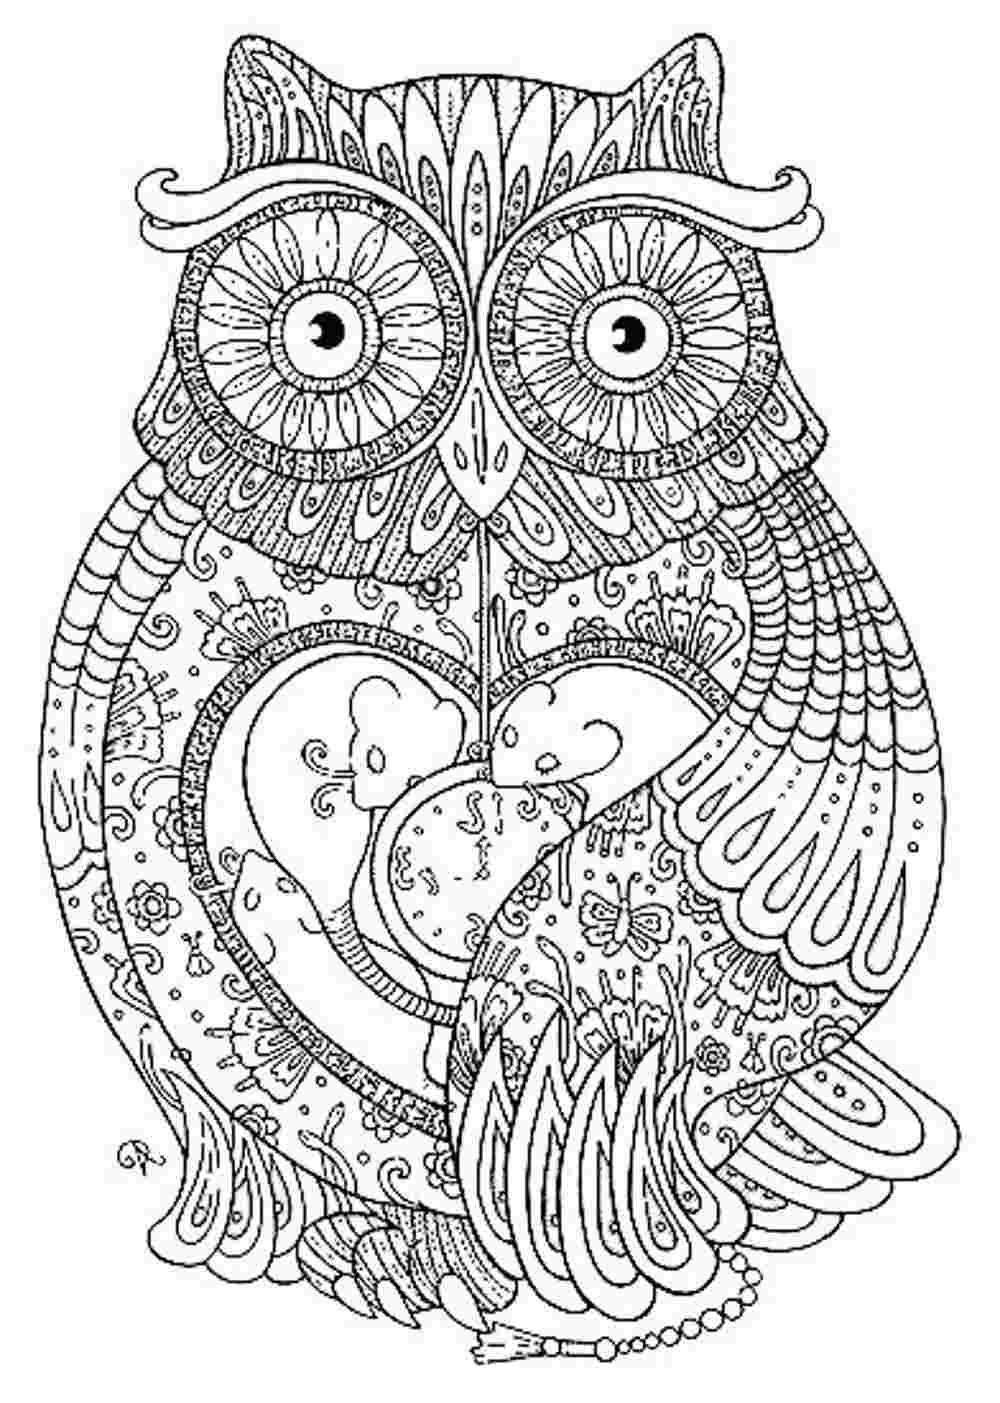 free coloring pages of mandalas - photo#36